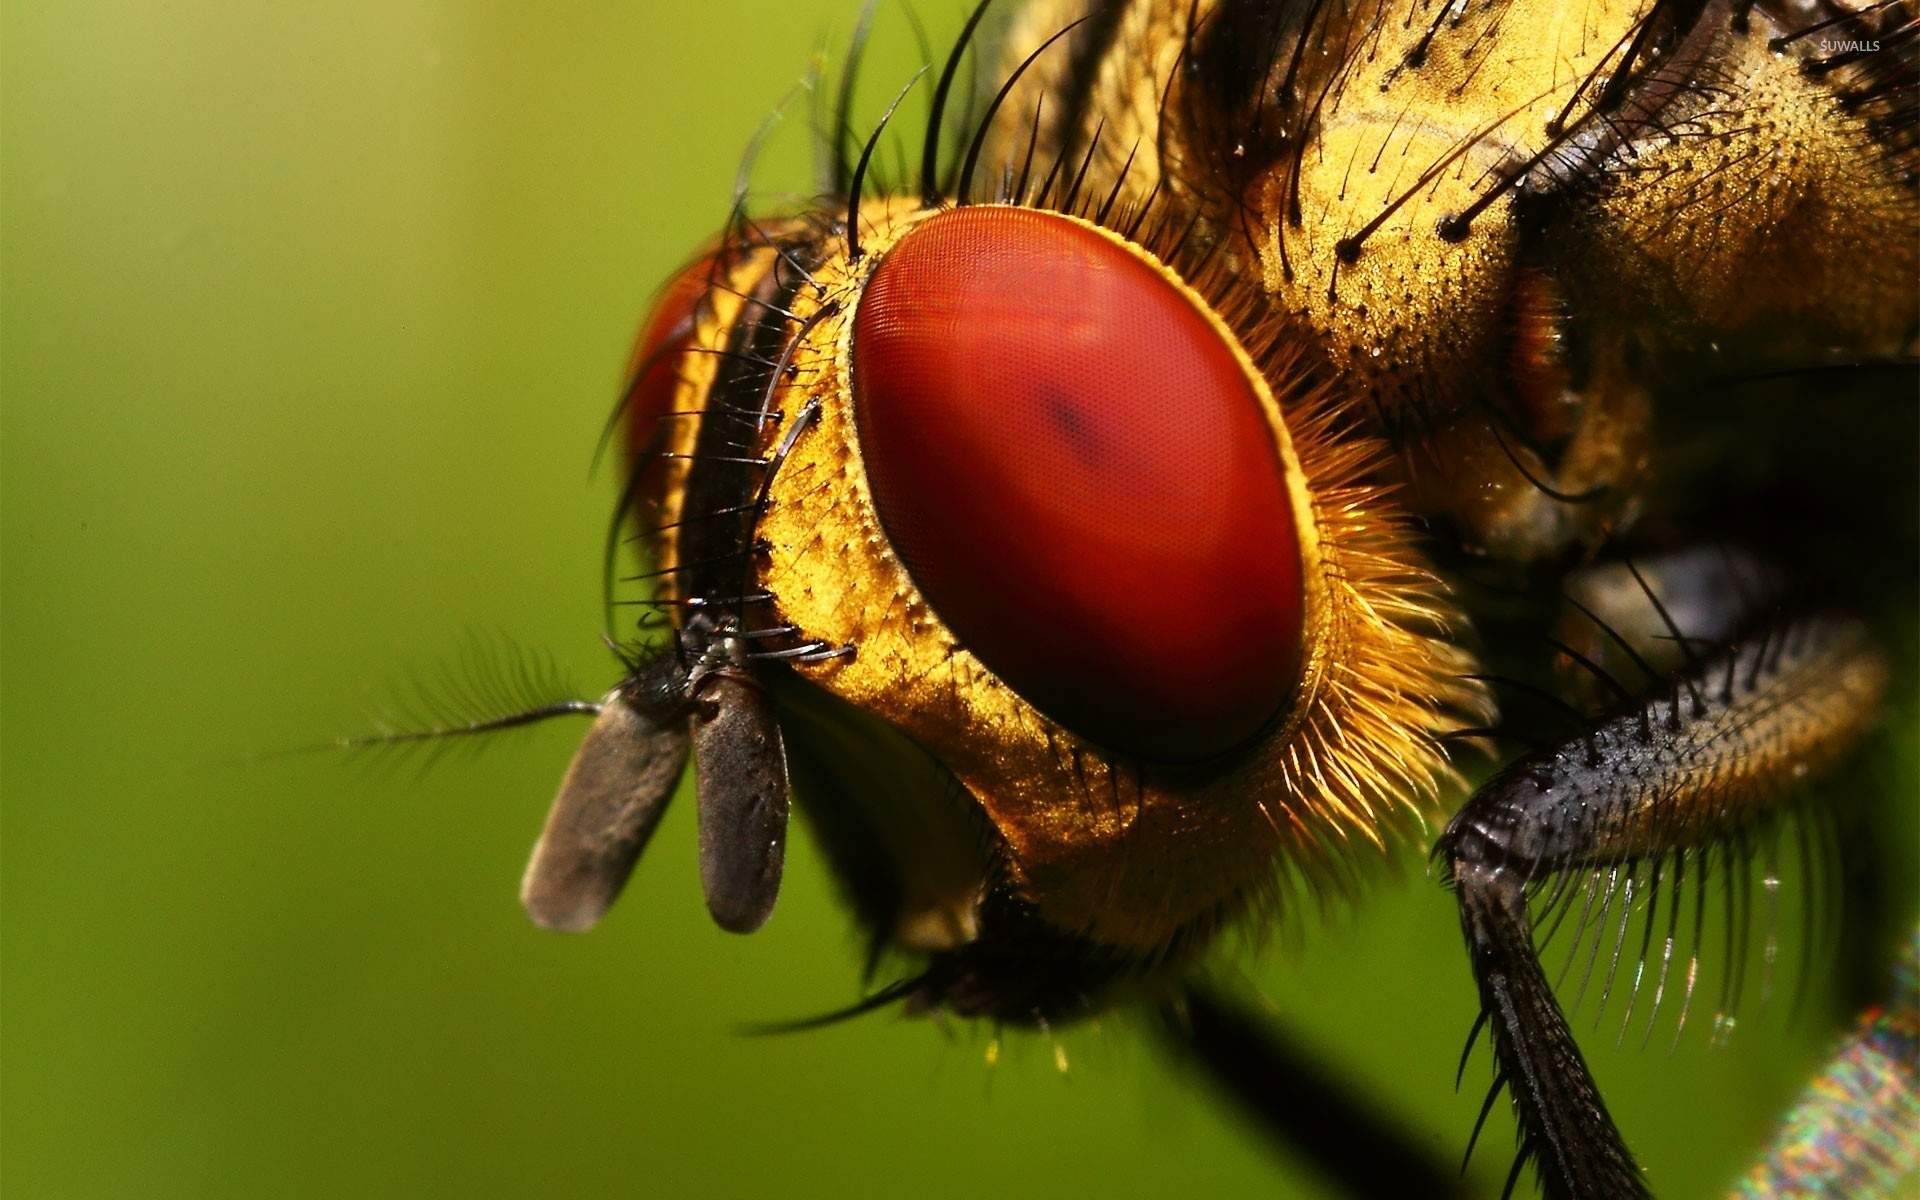 Insect wallpaper - Animal wallpapers - #18389